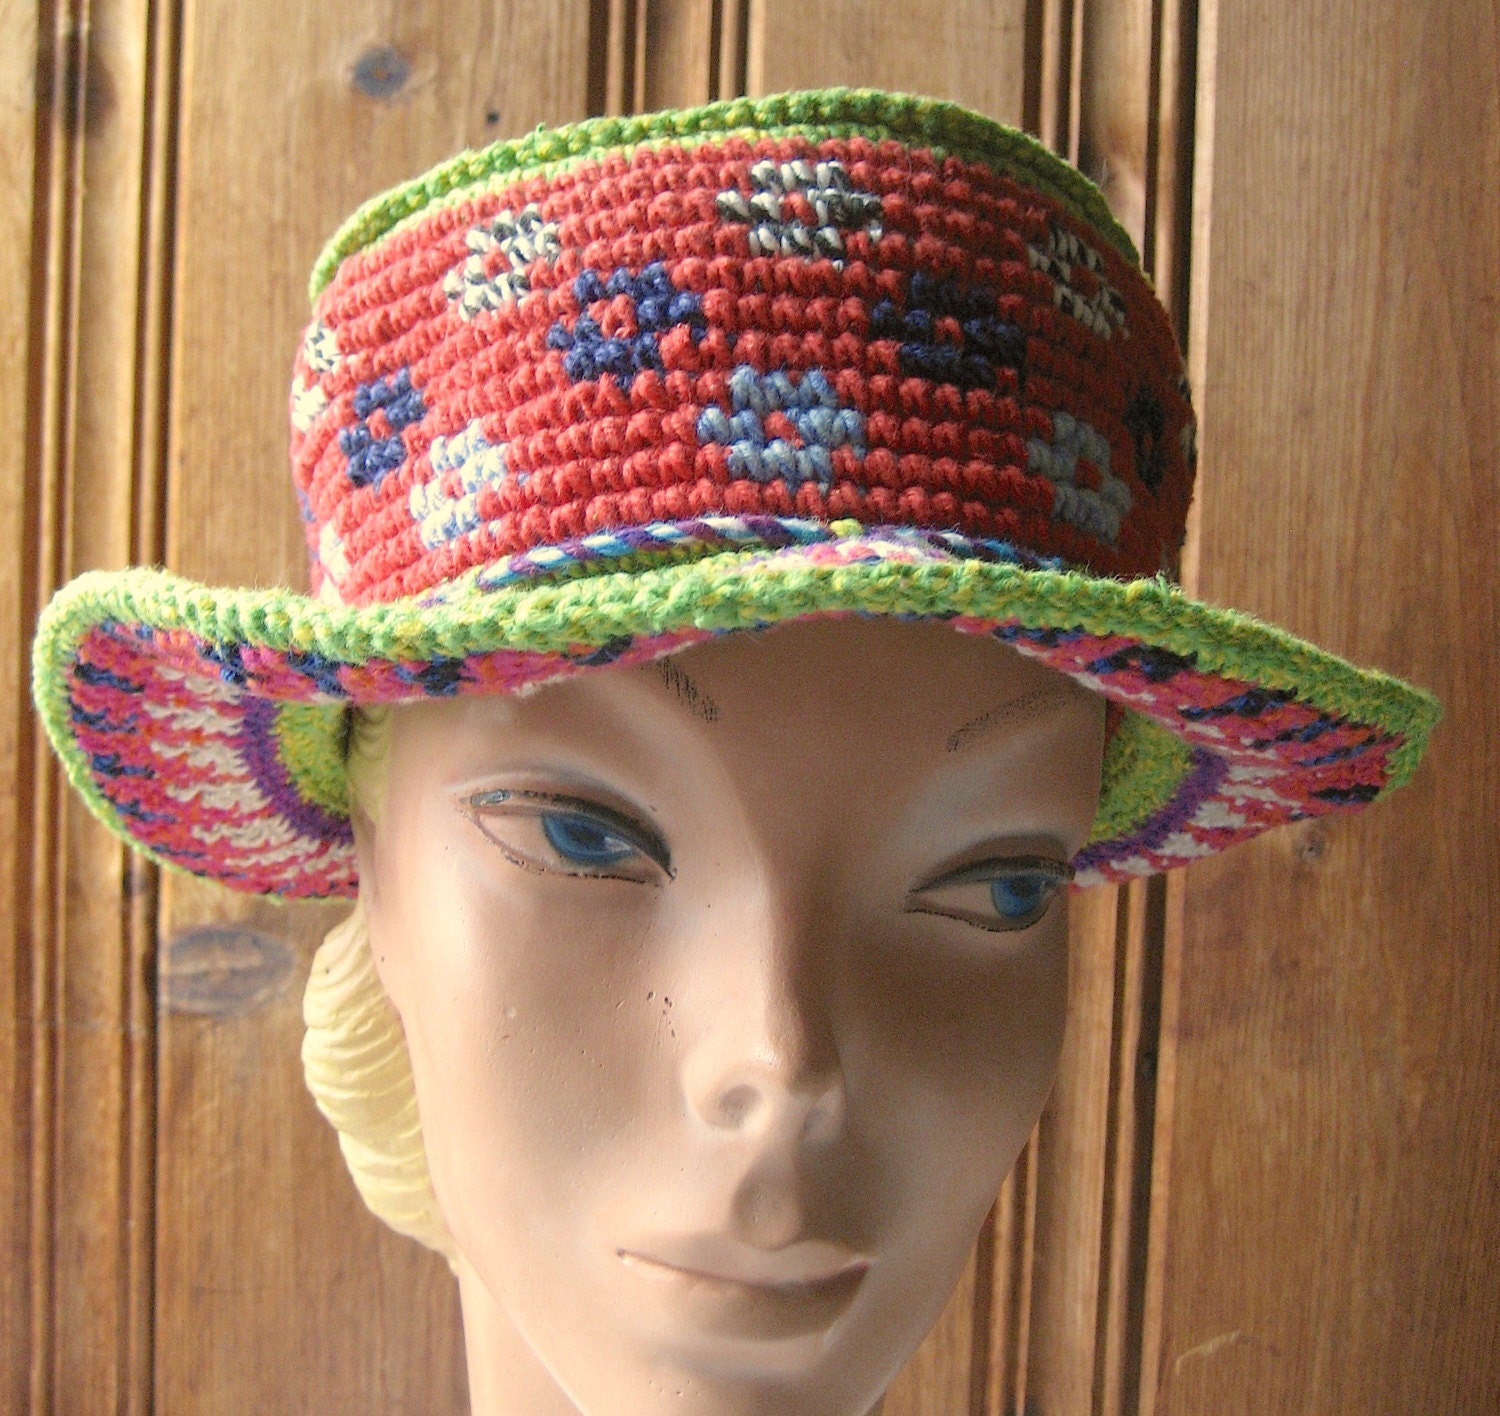 Crazy Crochet Hat: Crazy Cotton Crochet Hat Vintage Ladies' Heavy Knotted